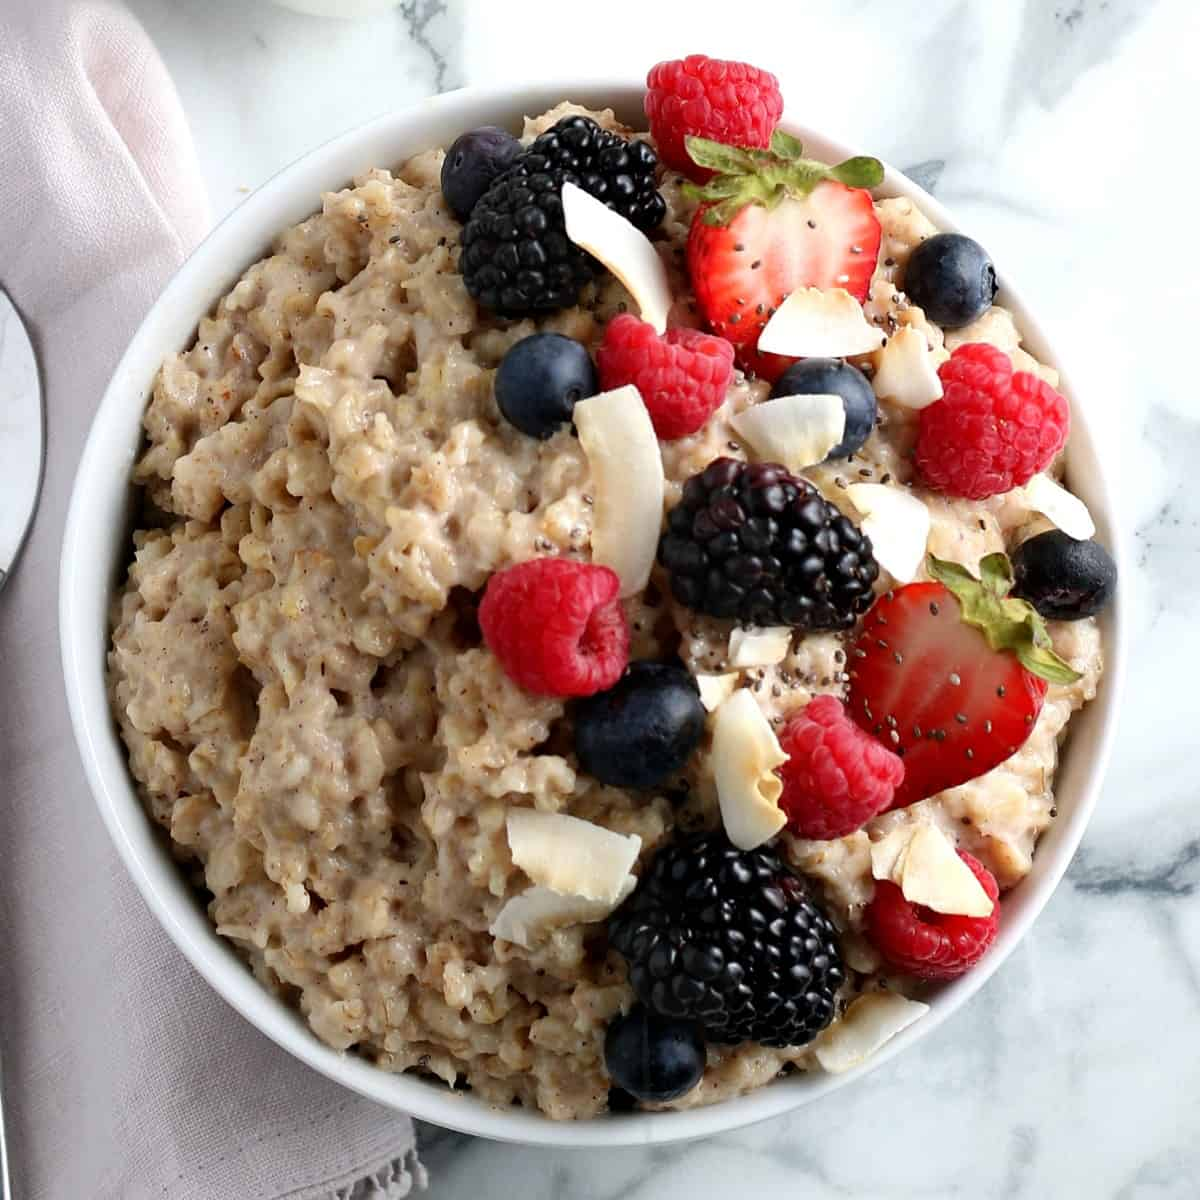 Overhead view of Oatmeal with half the bowl covered with fresh berries and coconut flakes.